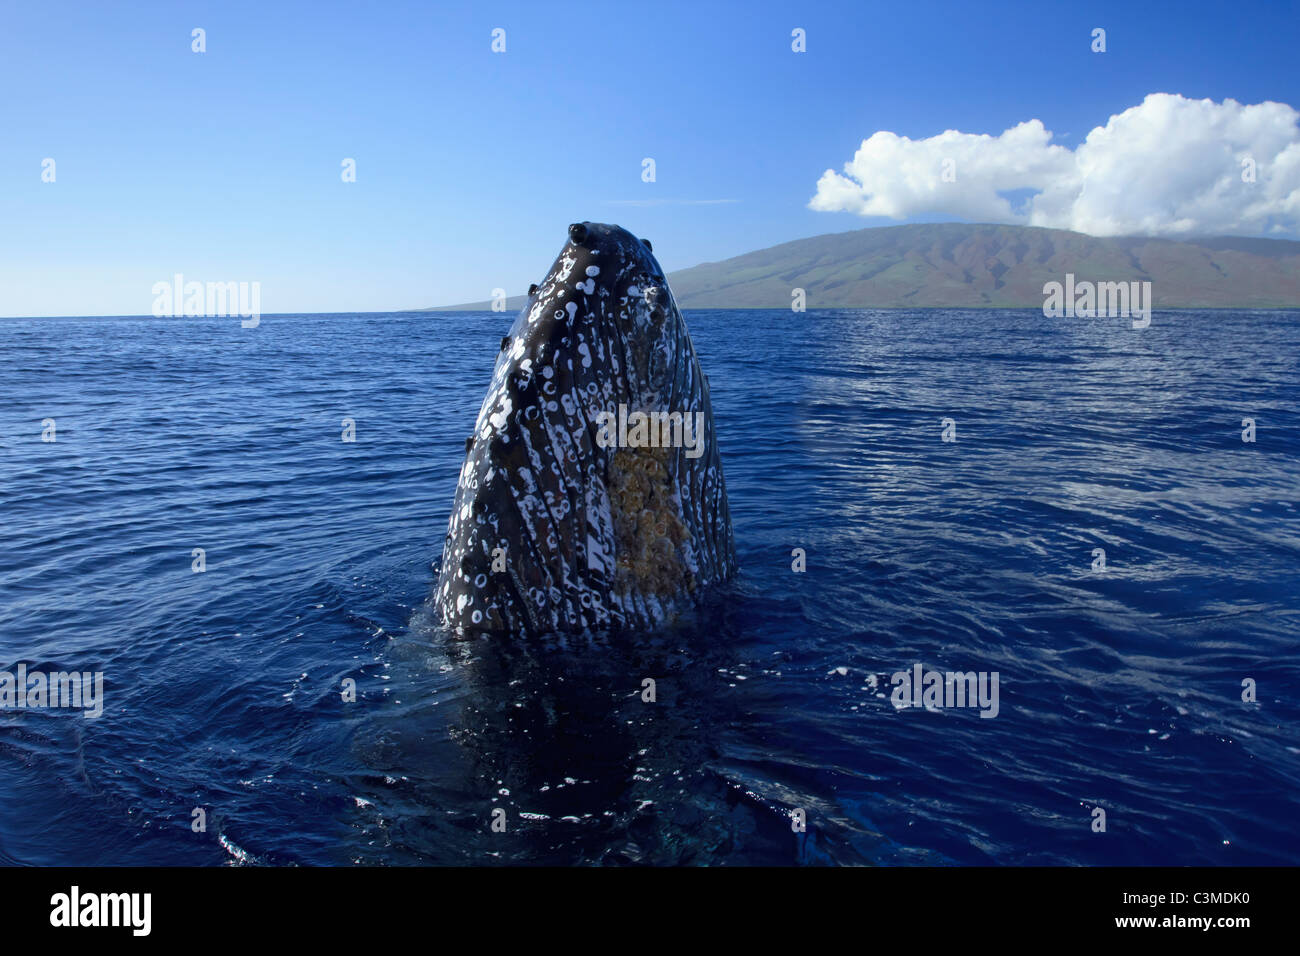 Humpback whale with barnacles surfaces with the island of Lanai; Hawaii in background. Stock Photo